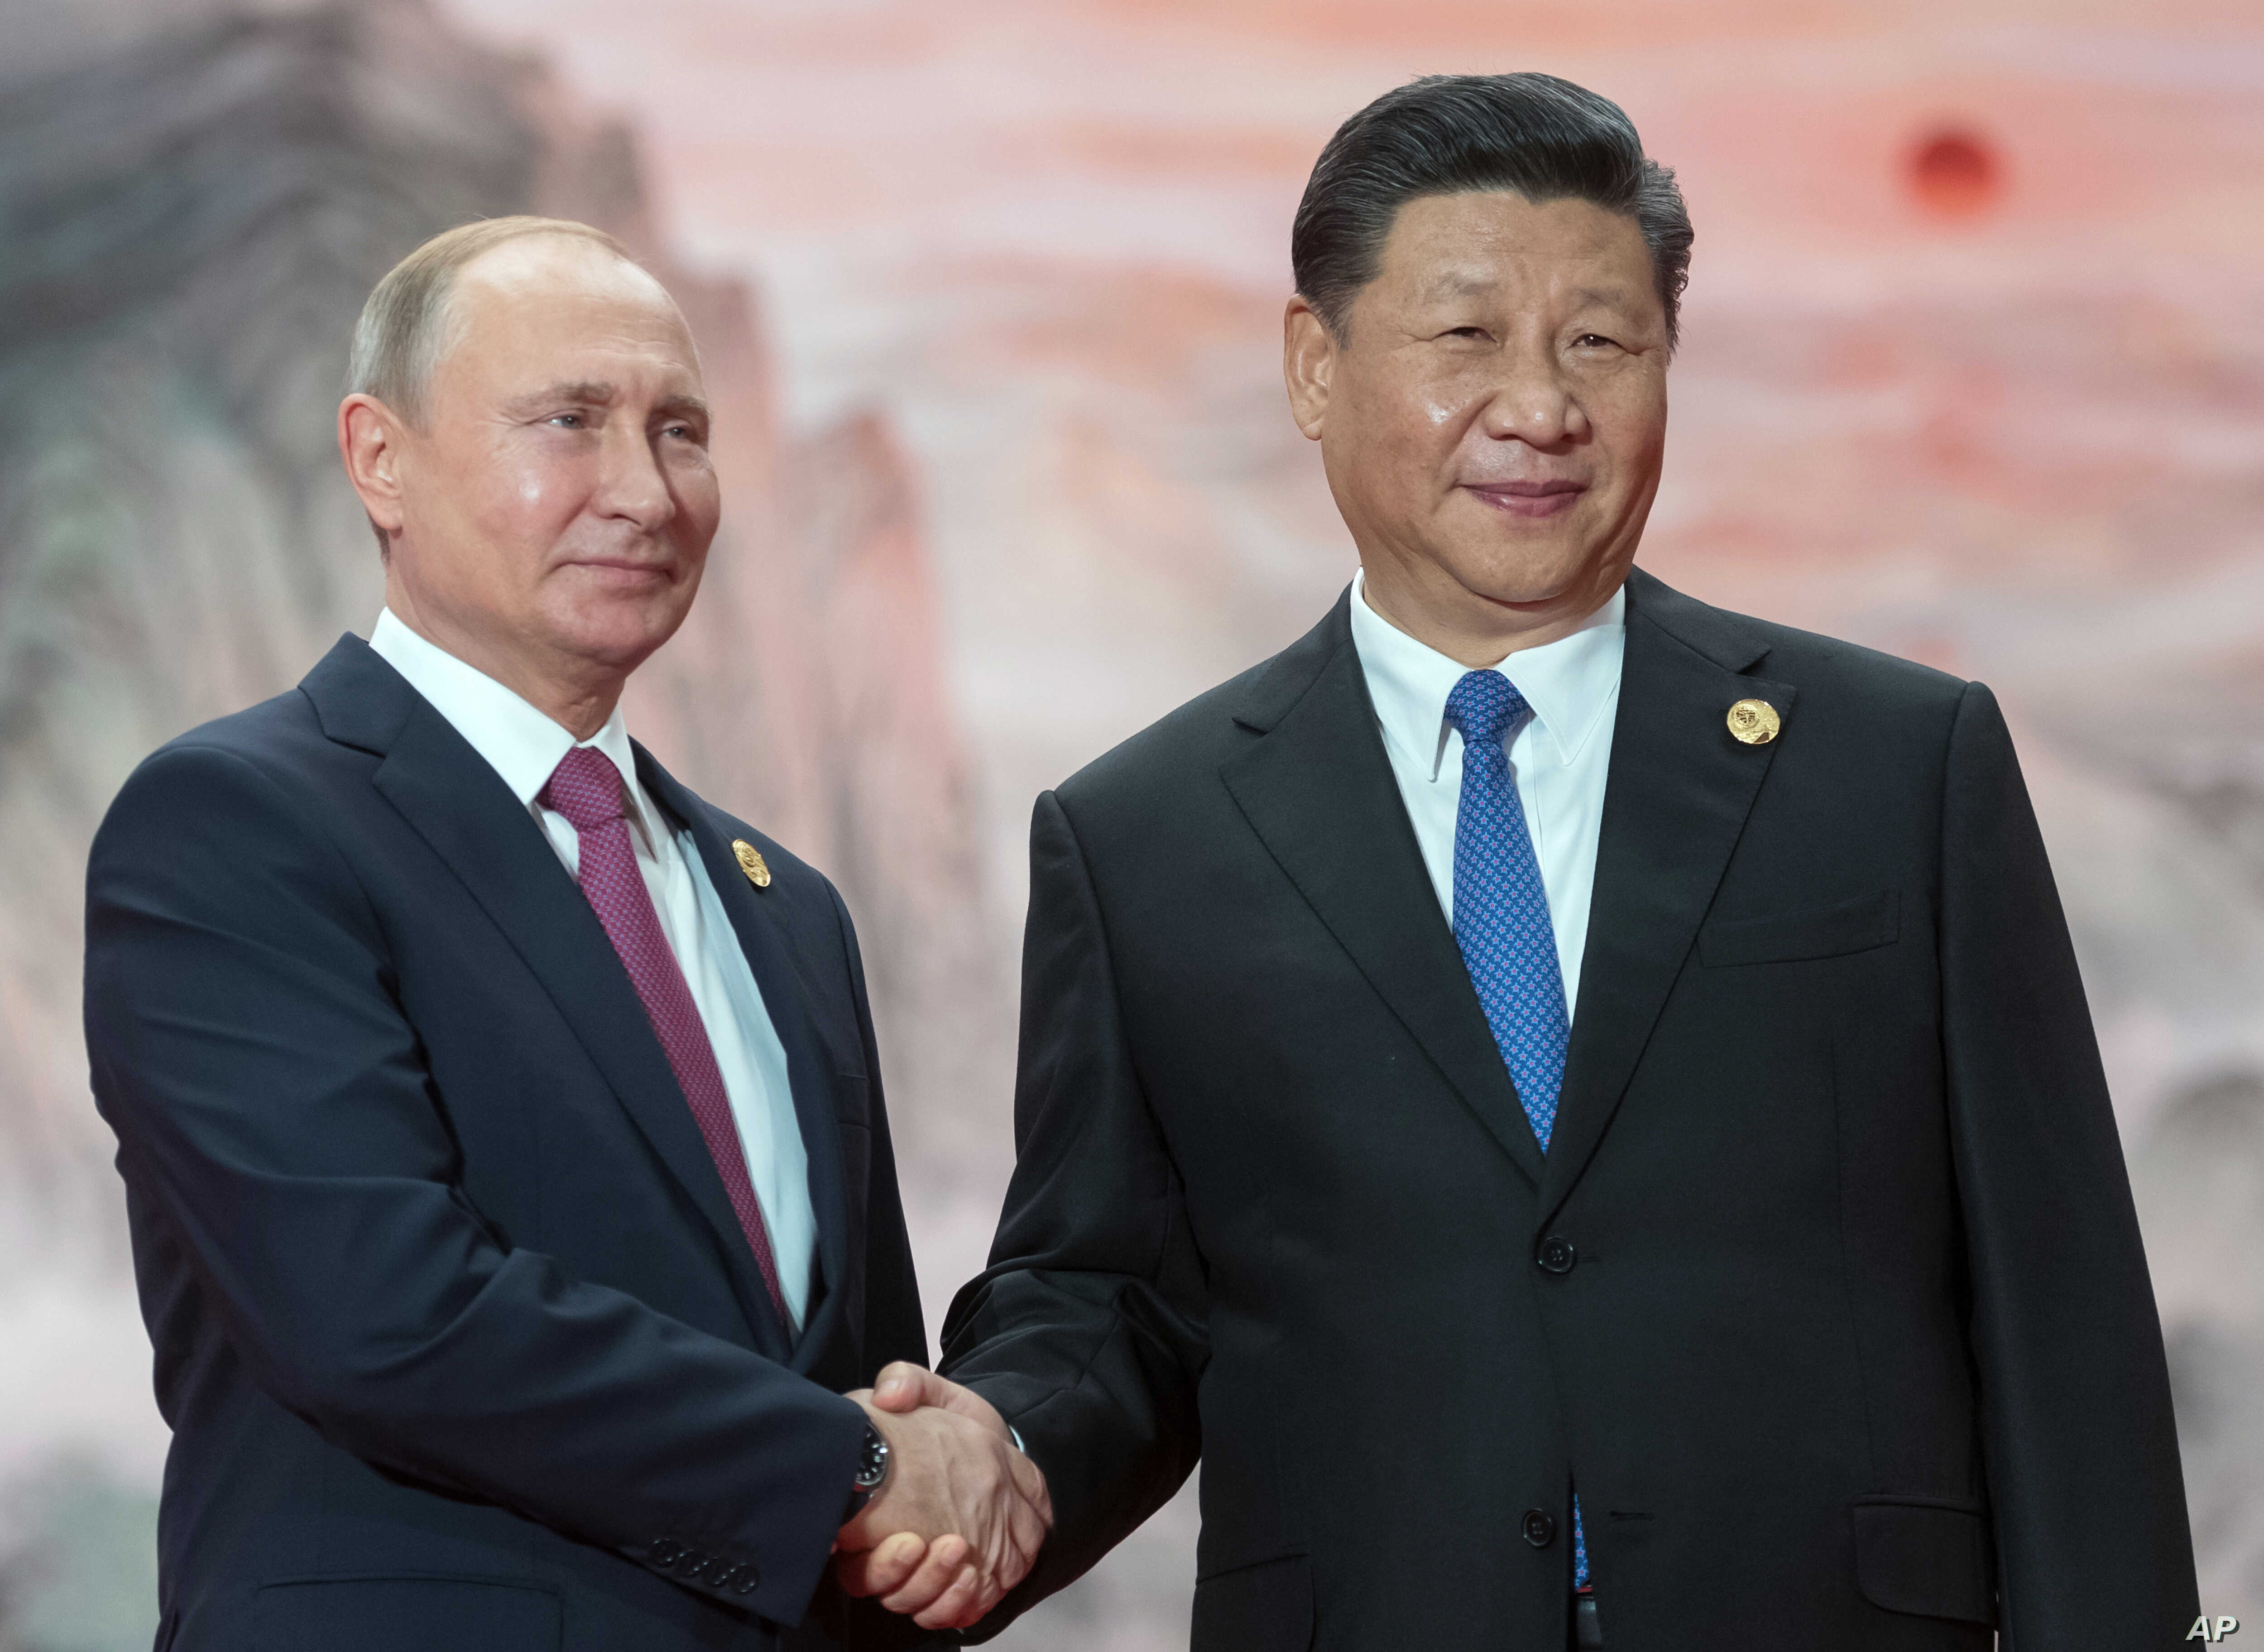 XI Takes Swipe at G-7 Summit In SCO Remarks | Voice of